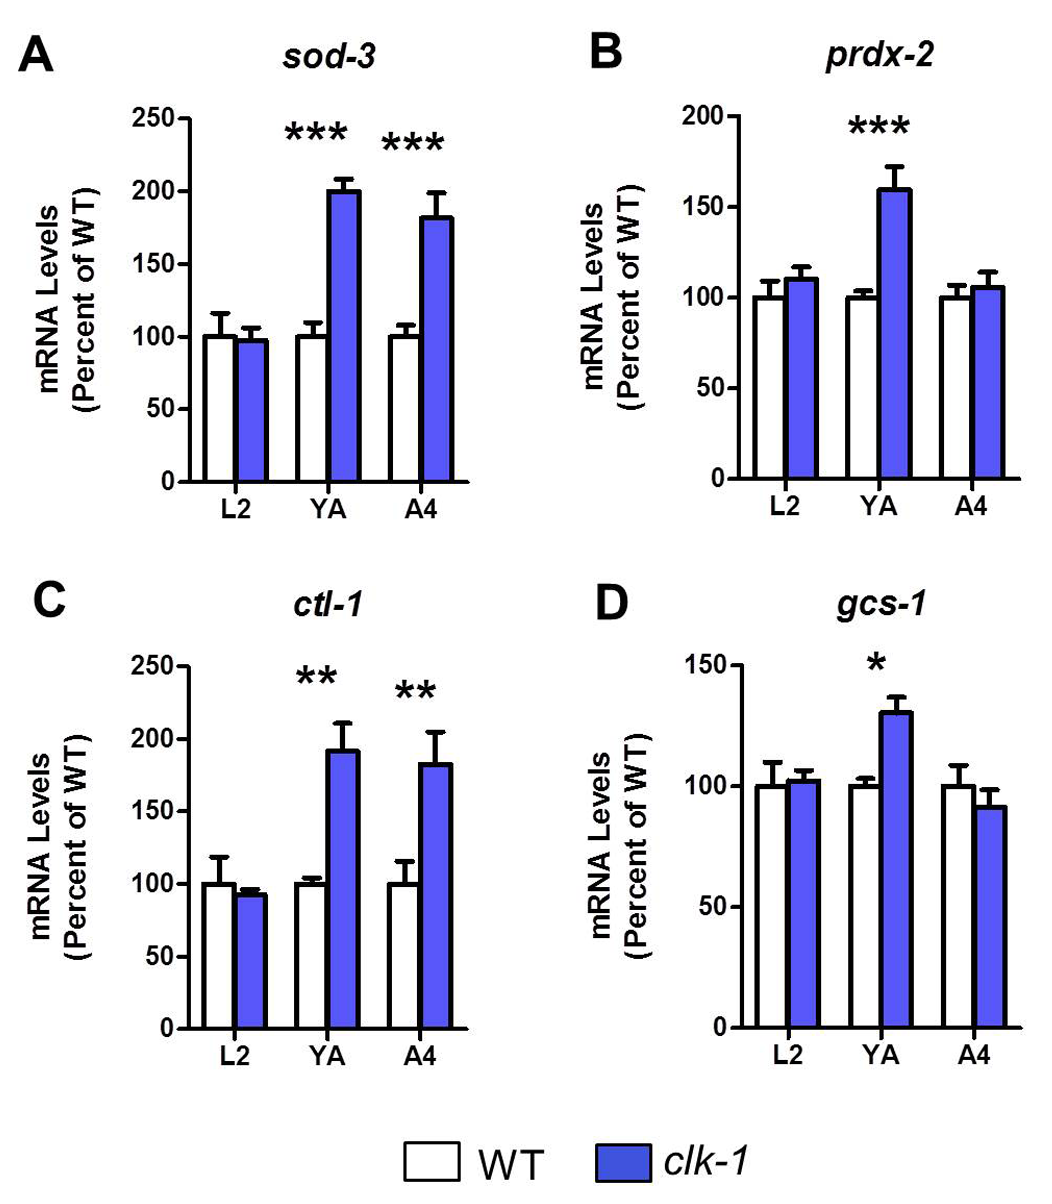 Antioxidant genes become upregulated in adult <i>clk-1</i> worms.